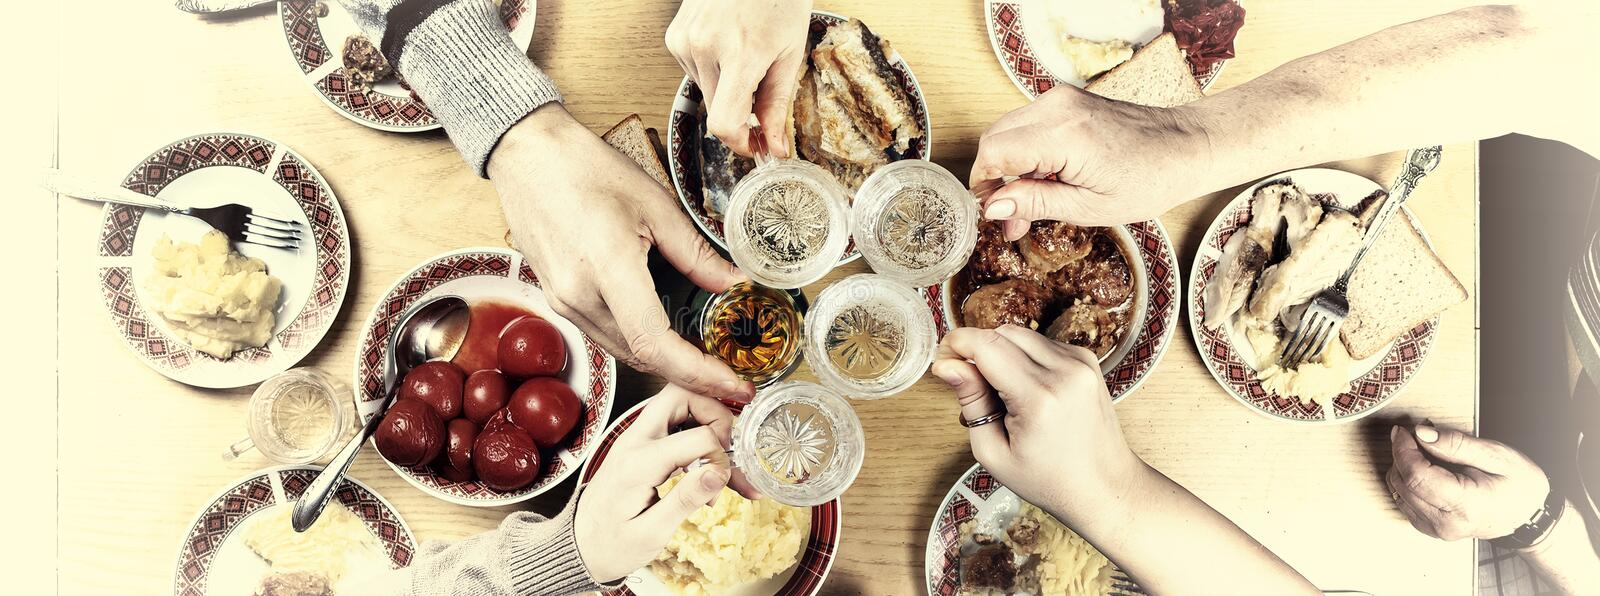 Thanksgiving, Christmas. A gala dinner with family. royalty free stock photography